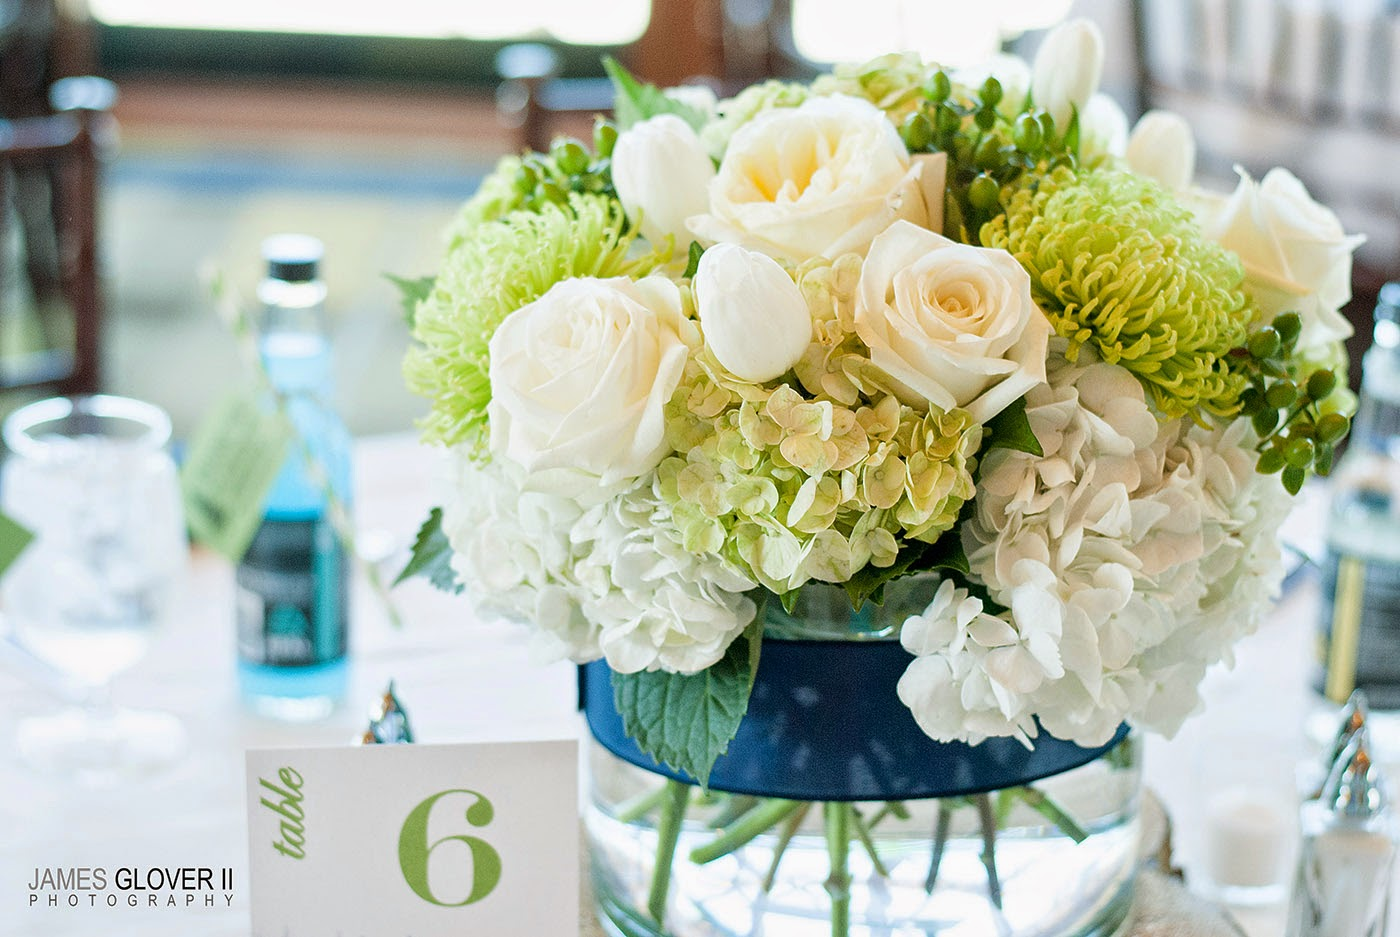 White wedding centerpieces by B&B Designs | James Glover Photography | Take the Cake Events